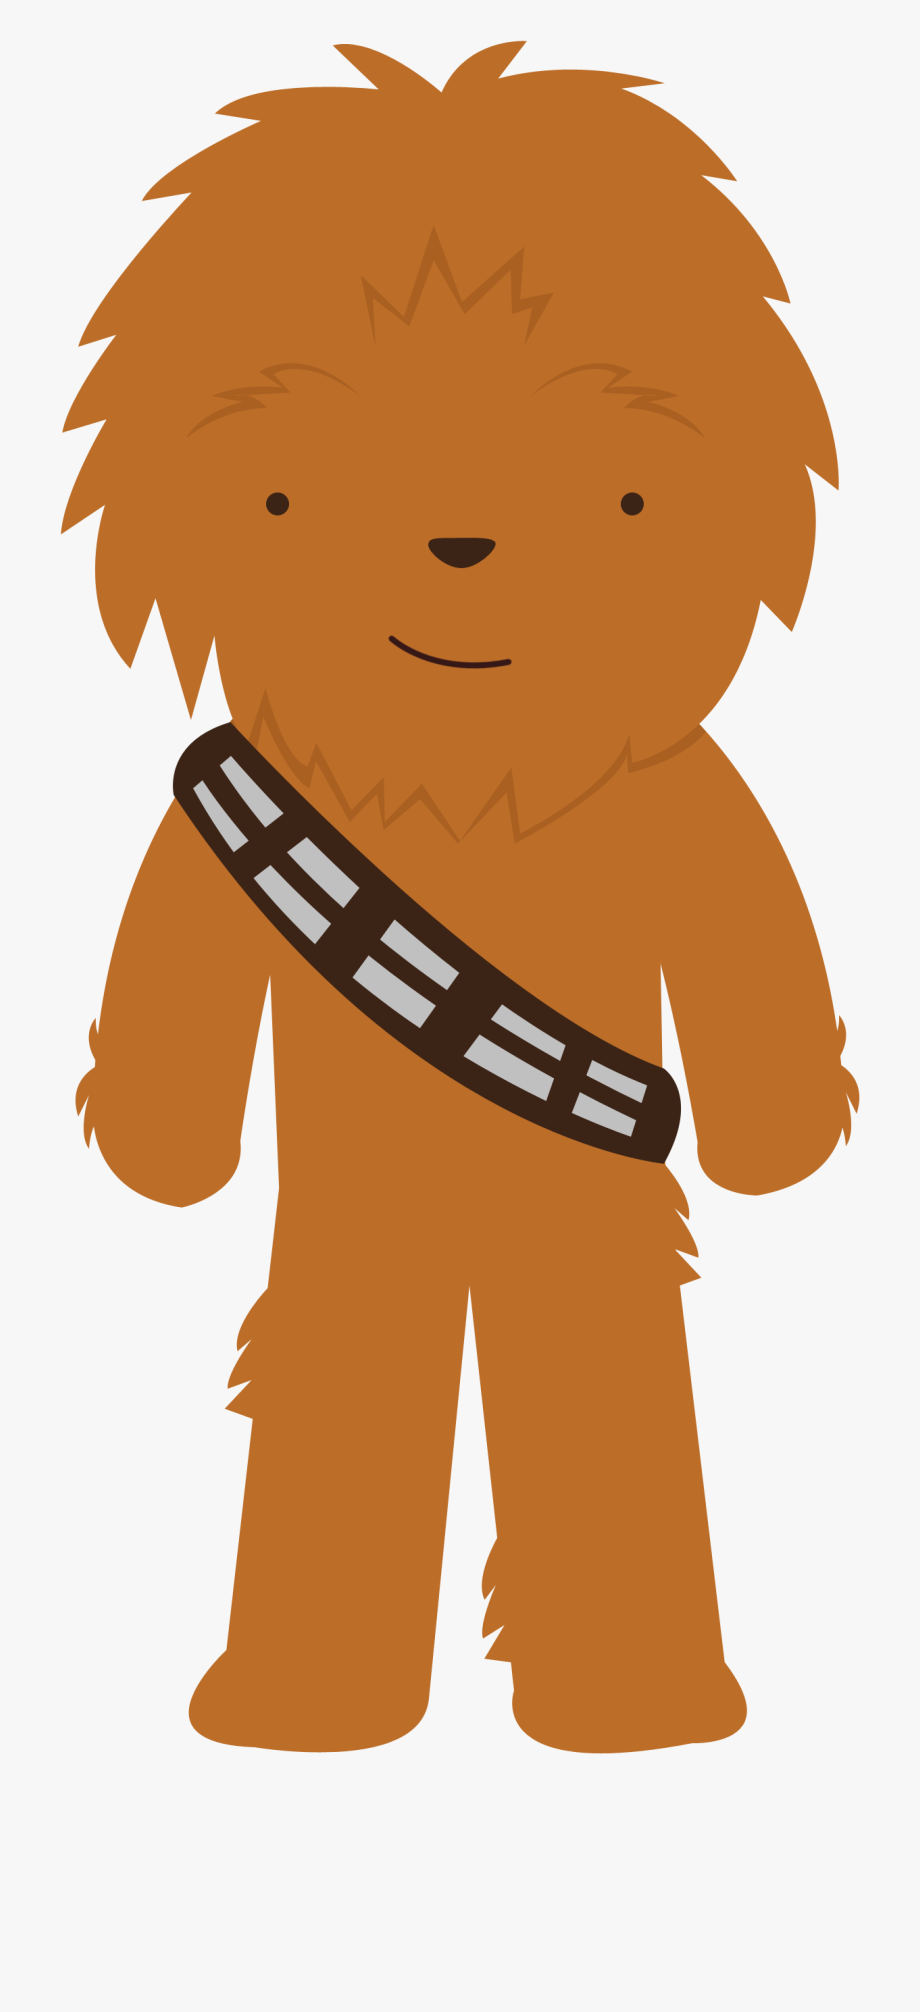 svg black and white download Star wars png transparent. Chewbacca clipart cute.